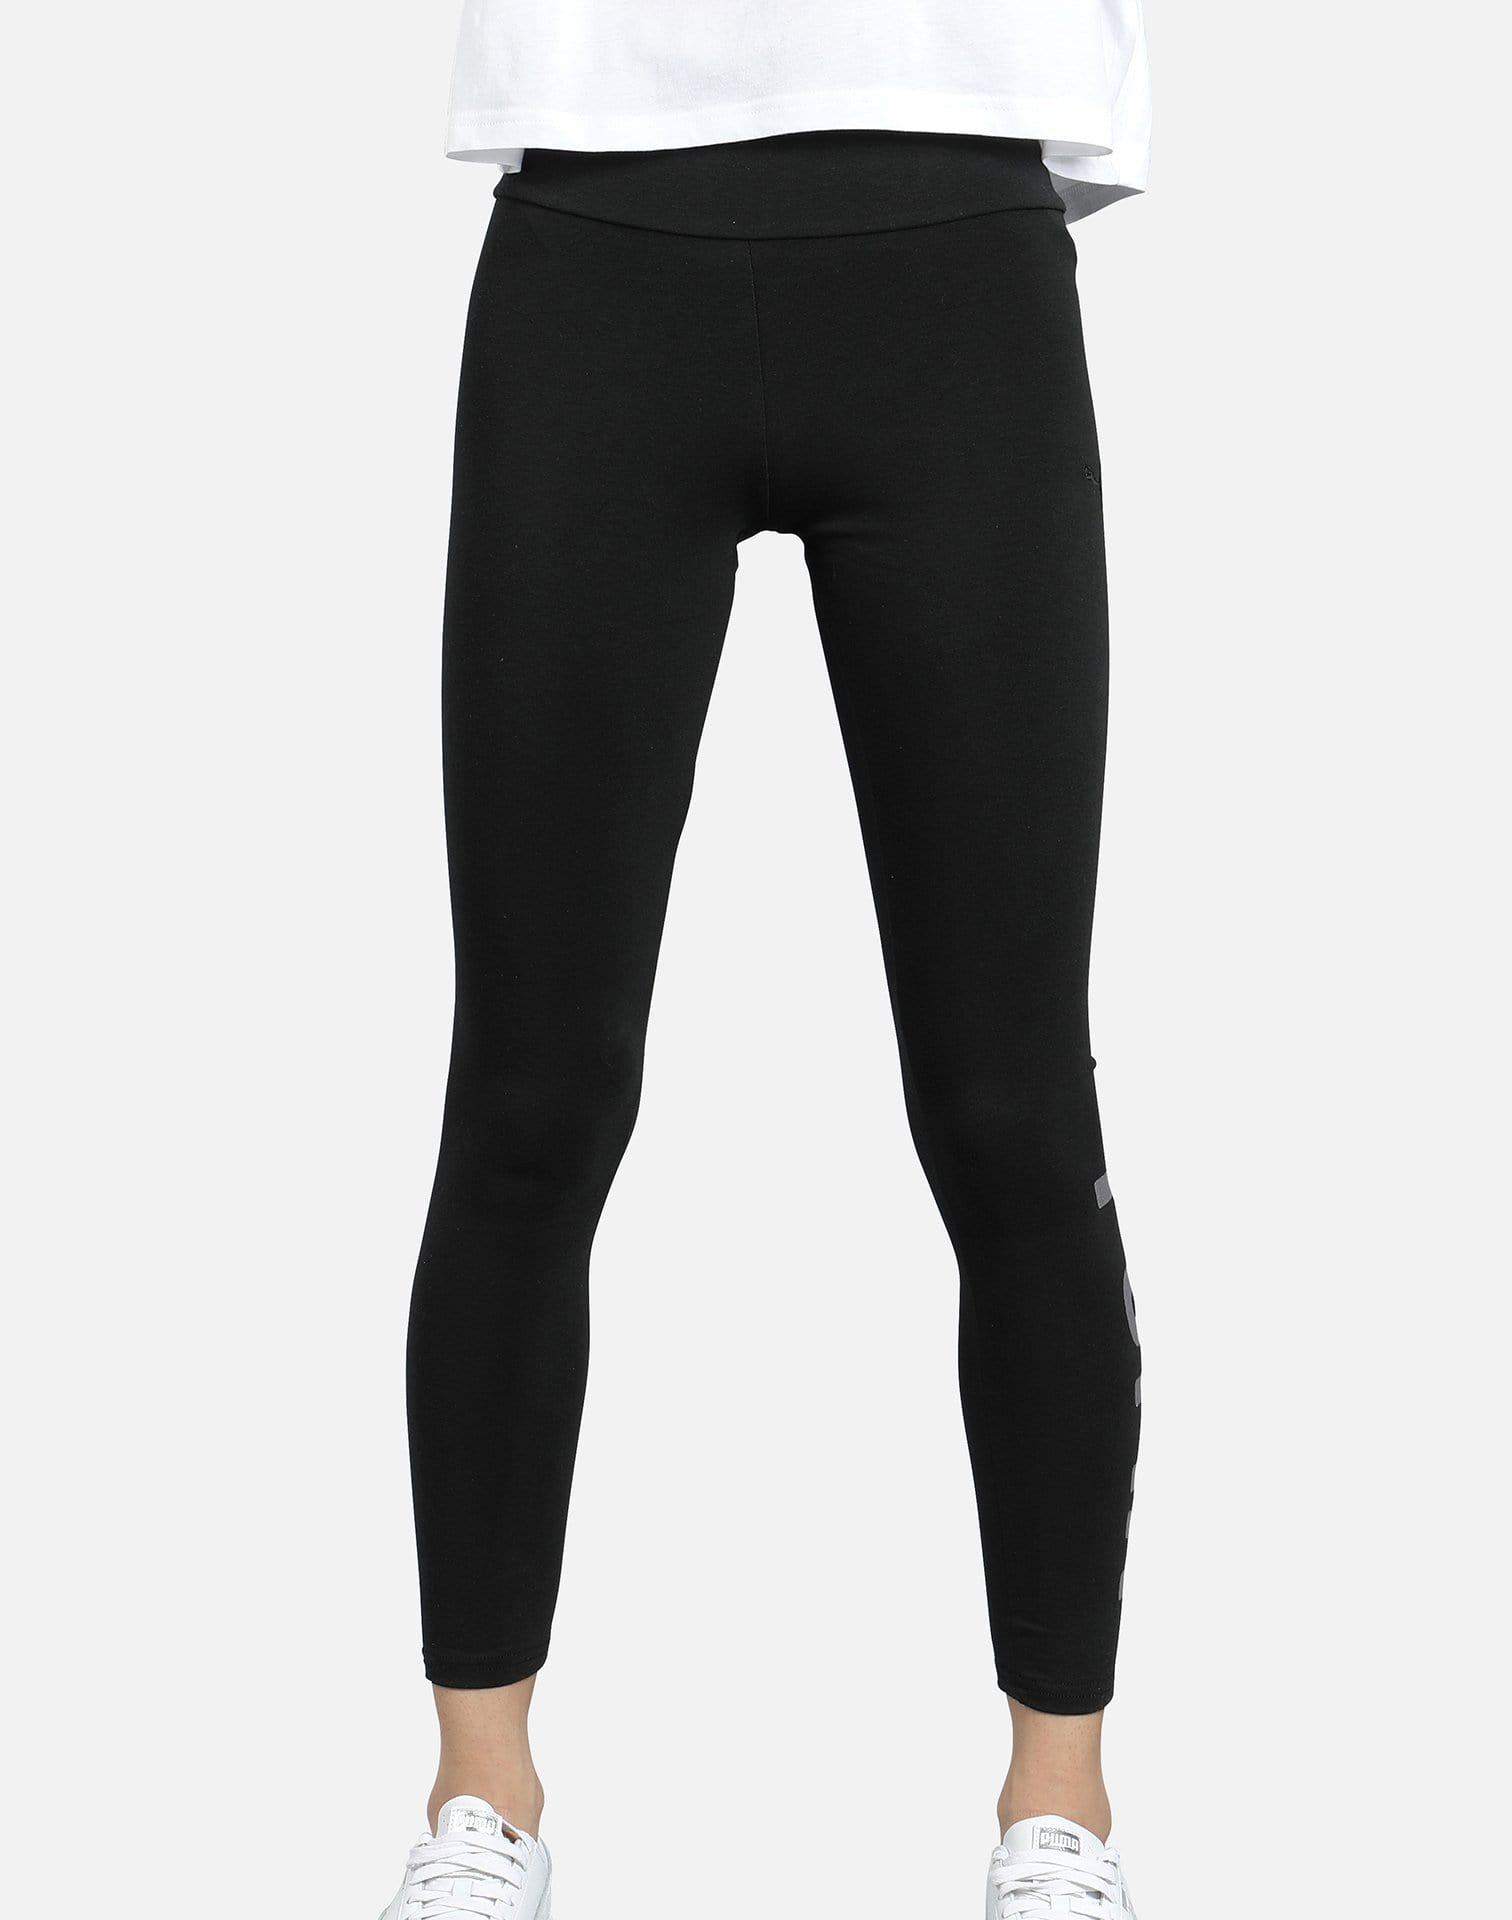 PUMA Women's Athletic Leggings